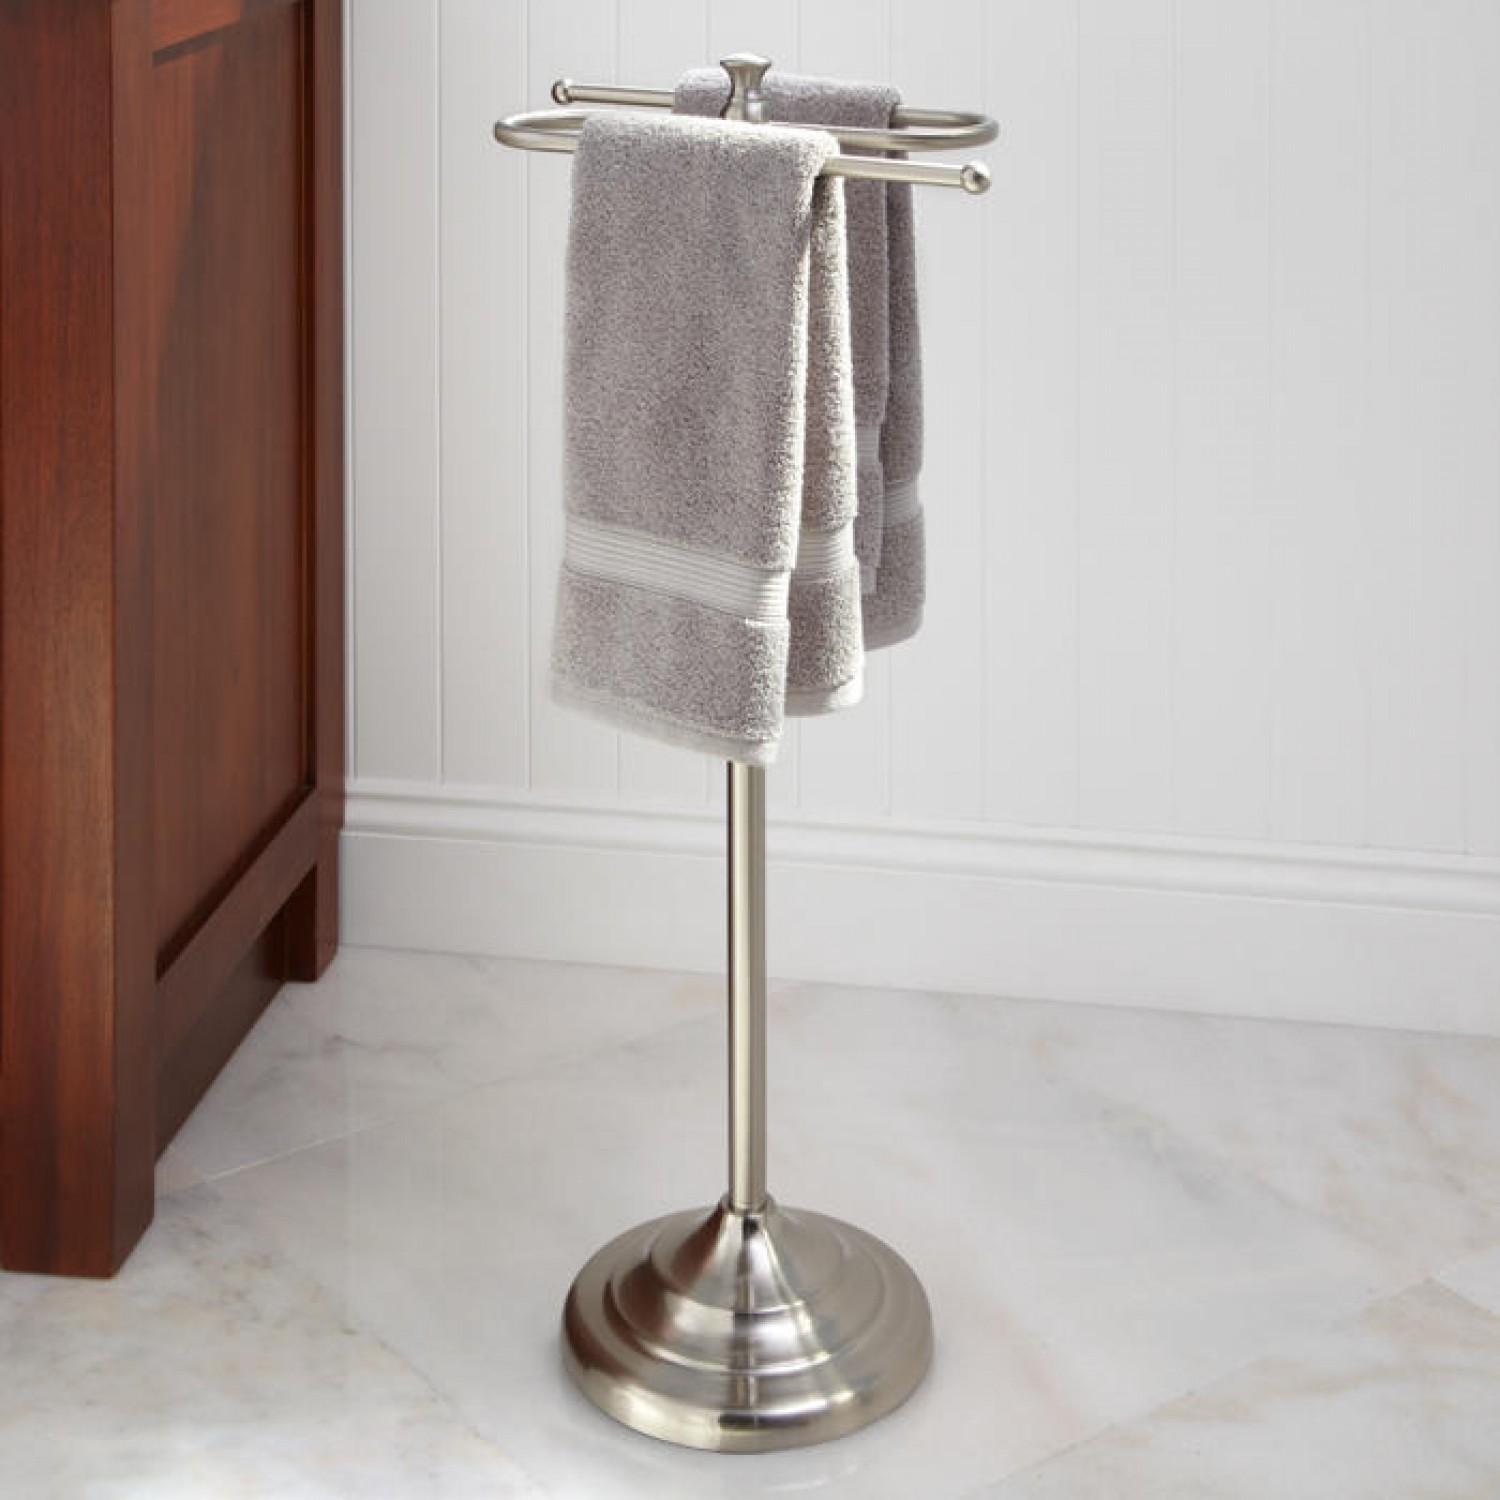 Image of: free standing towel rack ideas